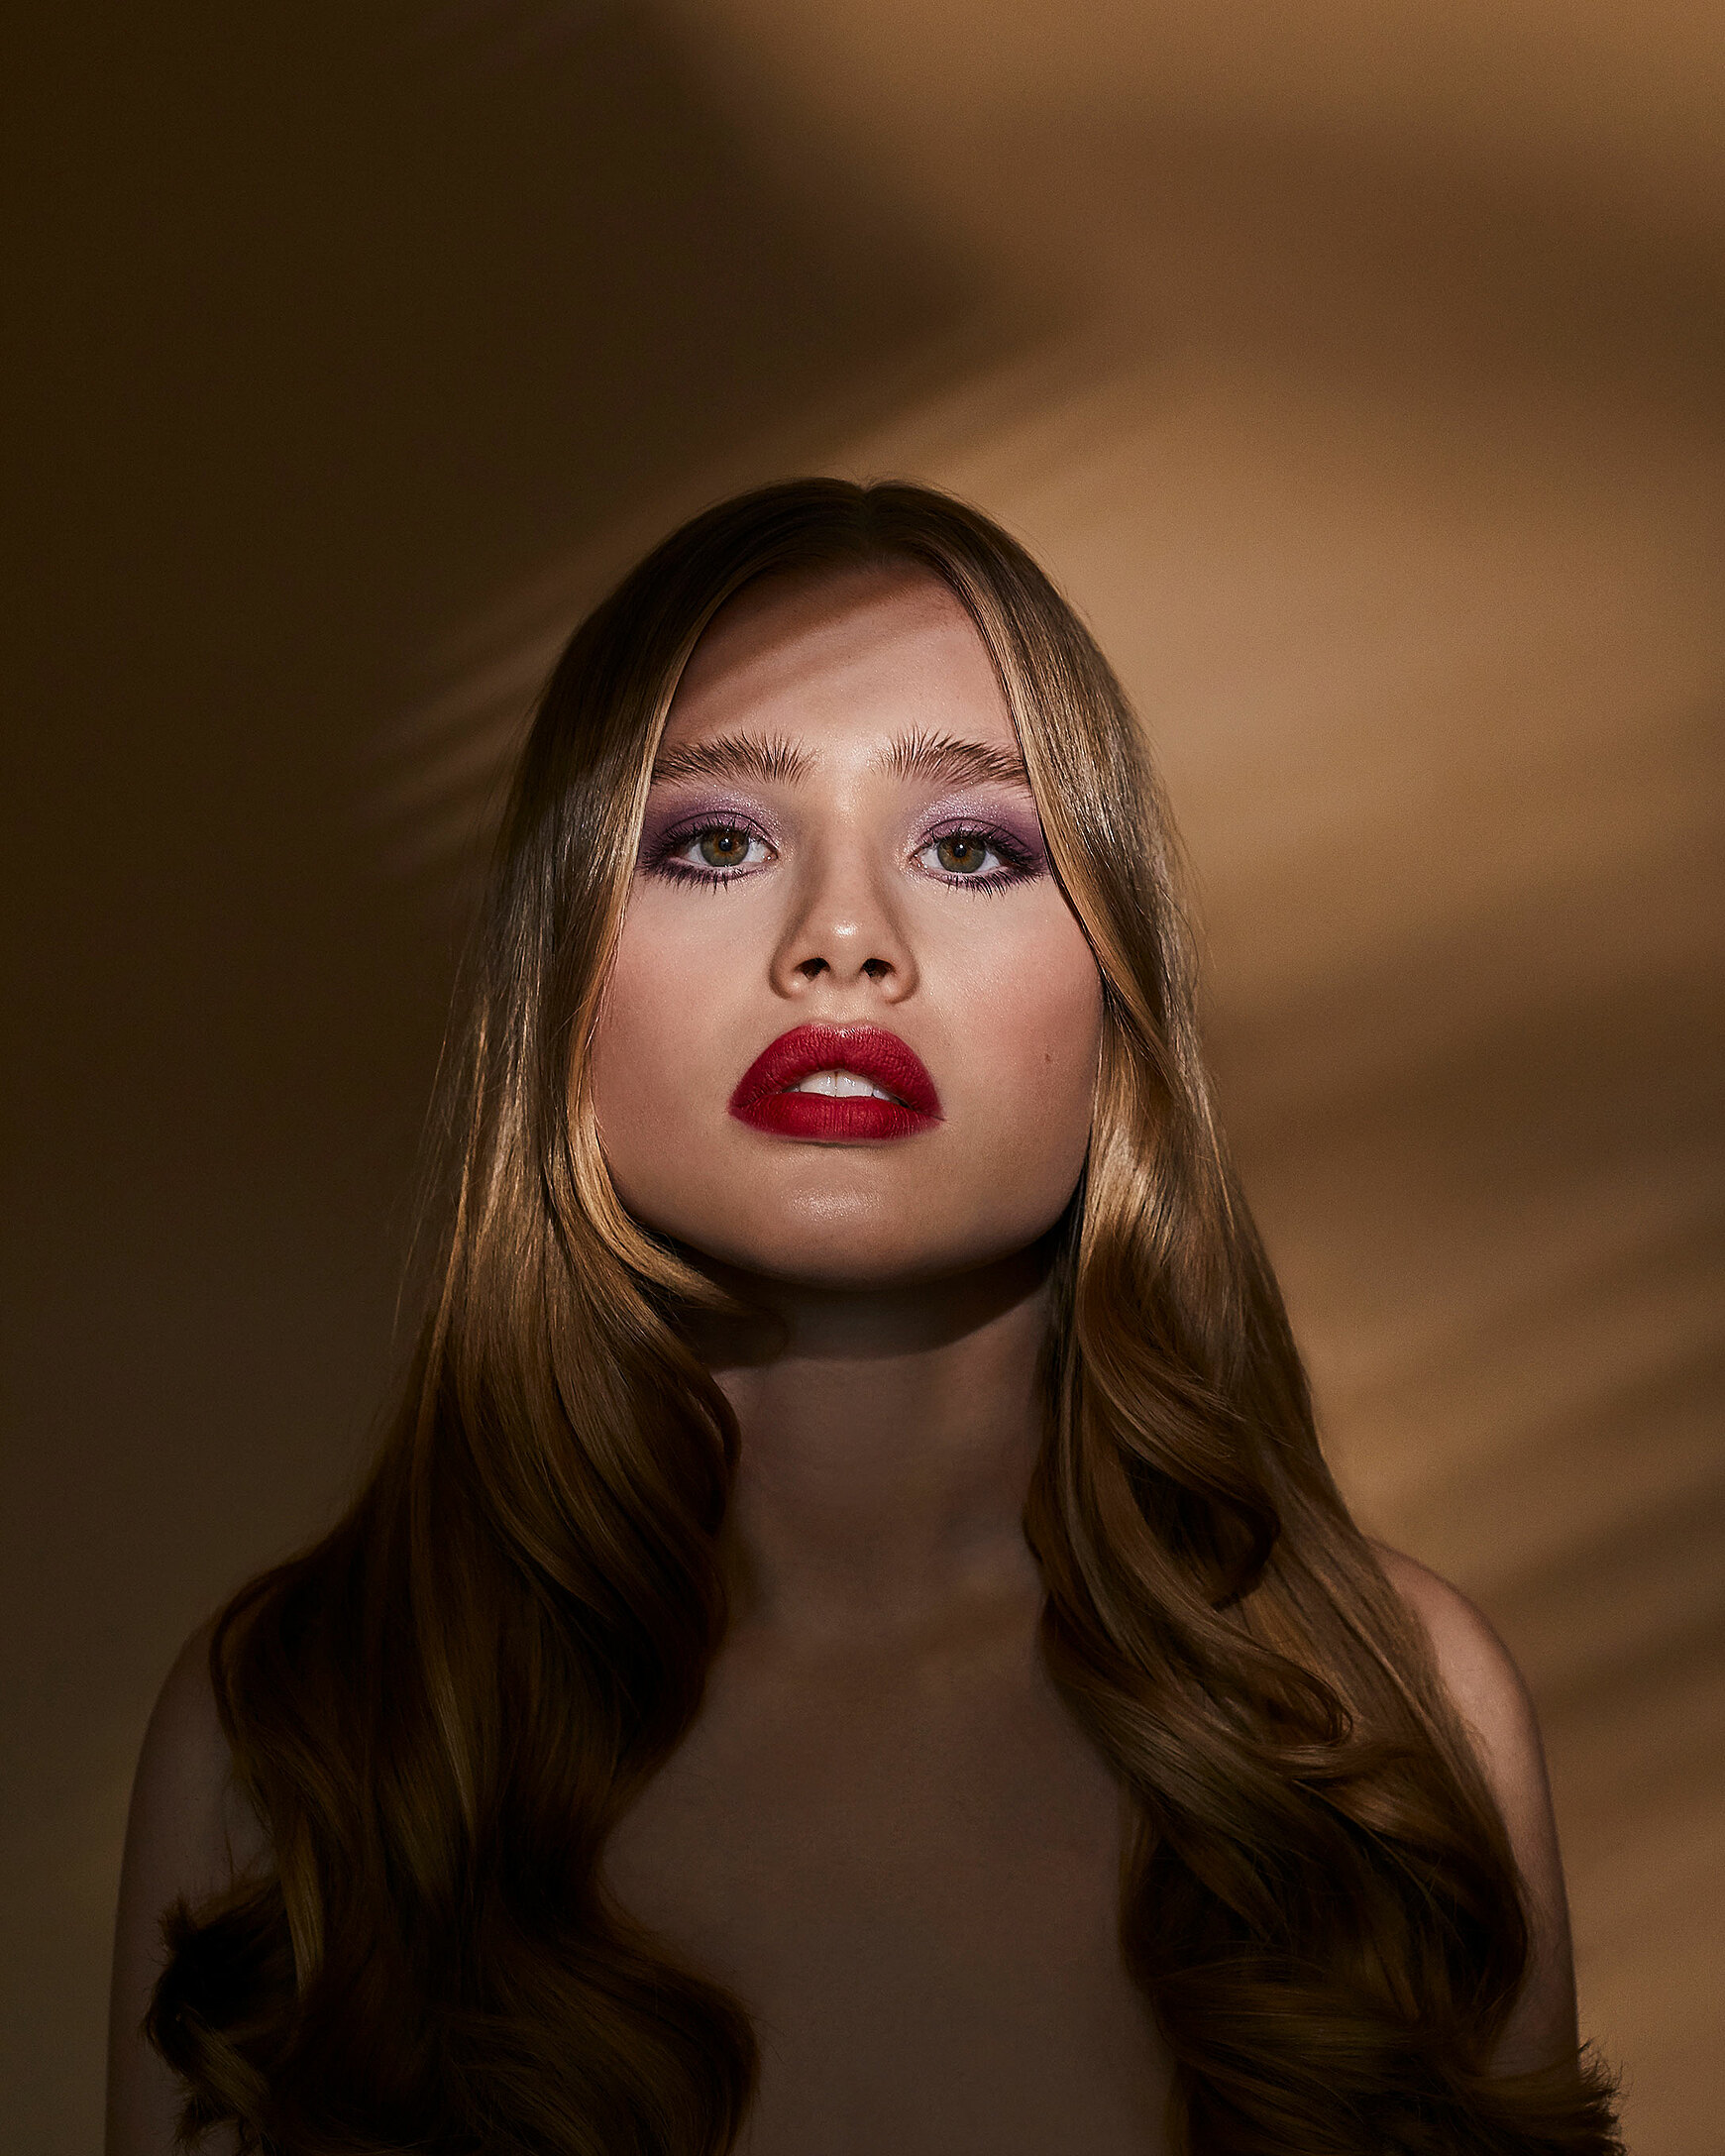 A female blonde model with red lips and purple eye shadow stand straight in front of the camera. The shadow is around her face